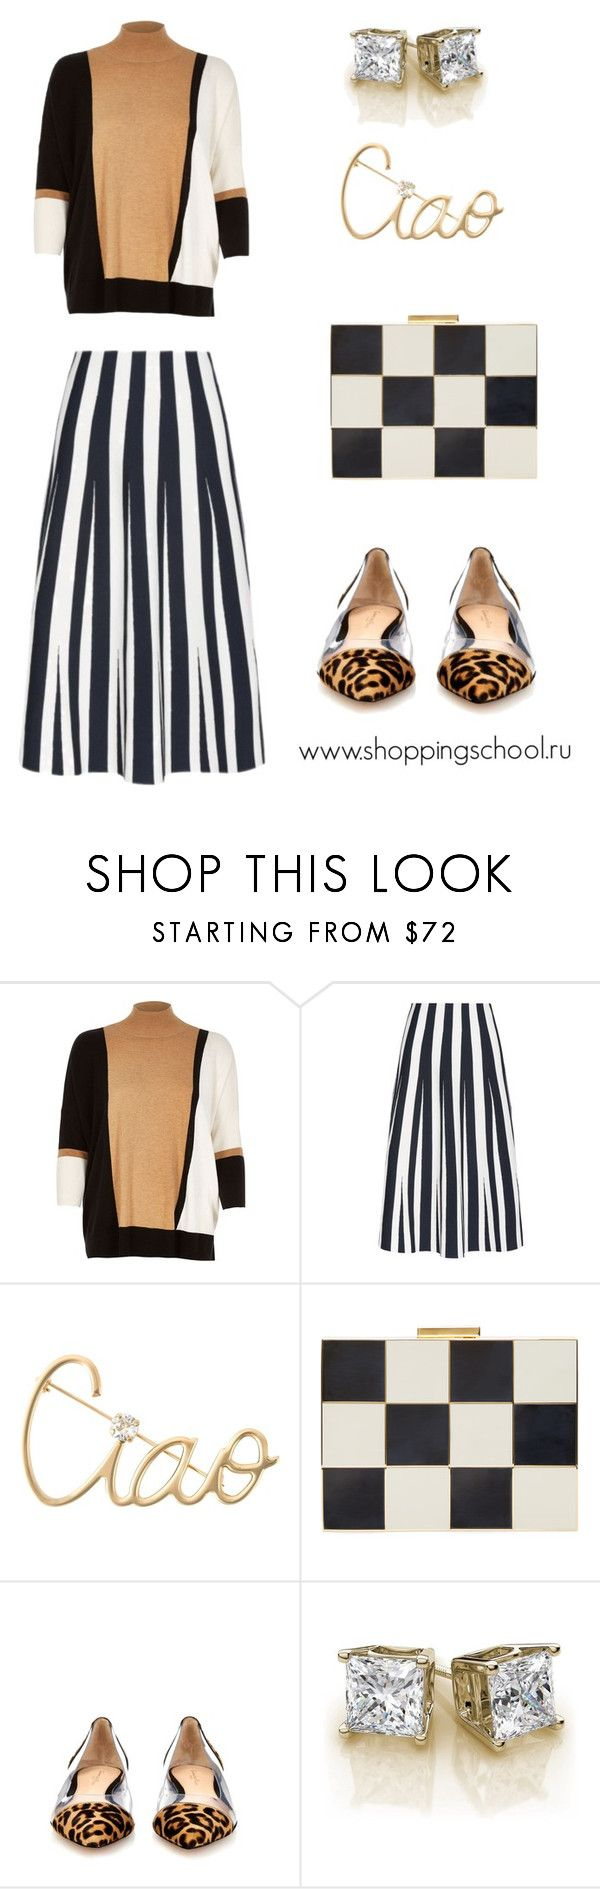 """""""Базовые вещи"""" by shkolashopinga ❤ liked on Polyvore featuring River Island, Alexander Wang, Lanvin, Valentino and Gianvito Rossi"""